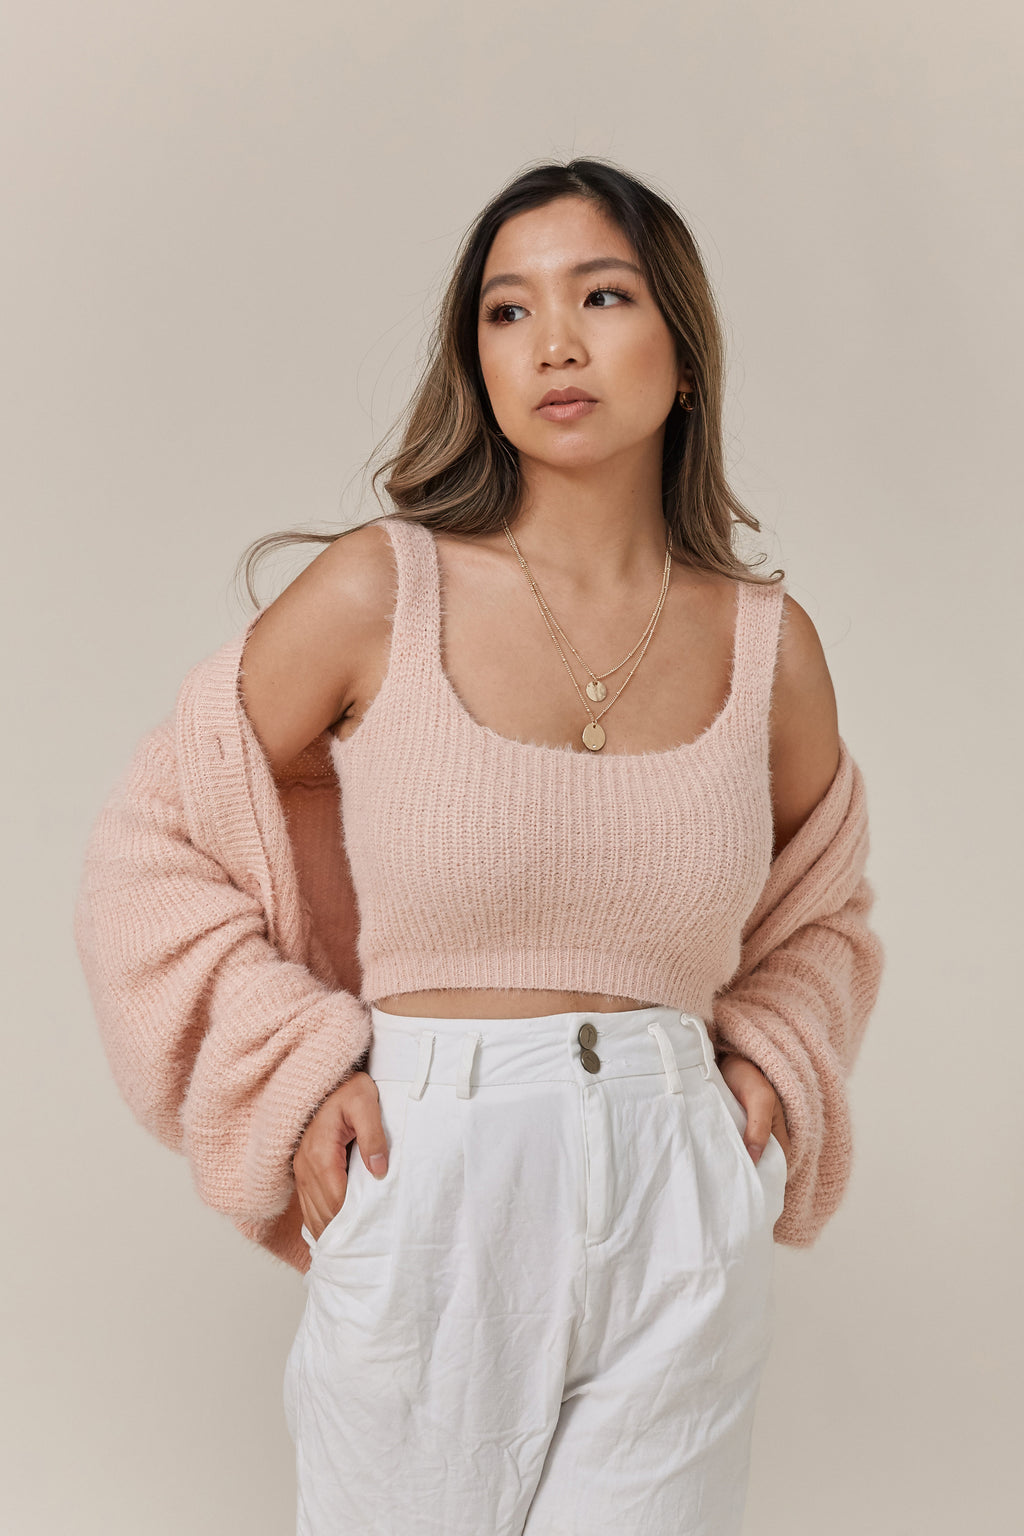 wild rina wildrina.com women's clothing boutique eyelash sweater and tank top set pink blush cropped balloon sleeve cardigan